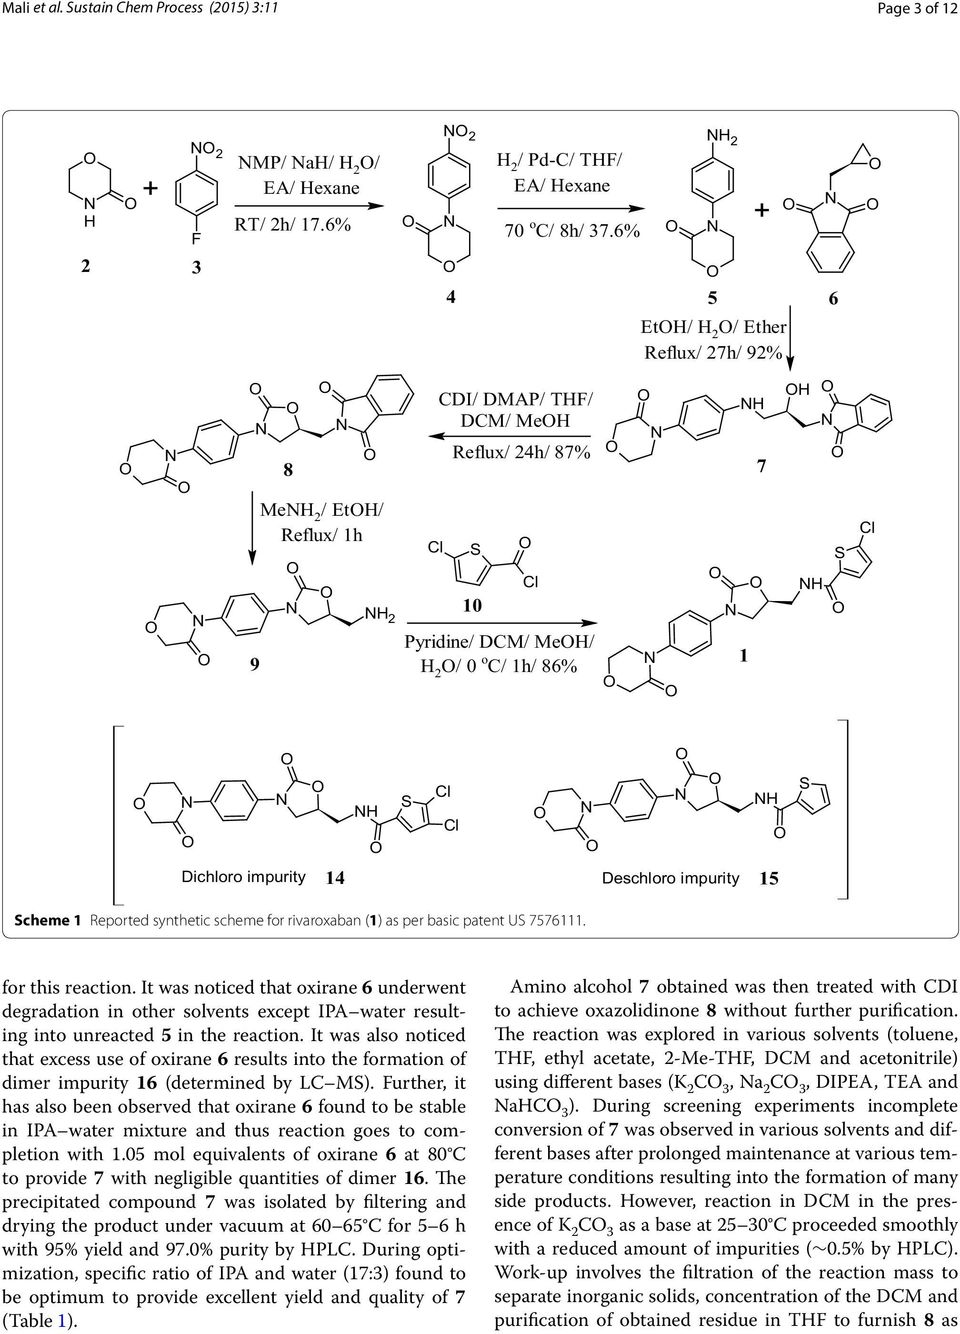 Deschloro impurity 5 cheme Reported synthetic scheme for rivaroxaban () as per basic patent U 7576. for this reaction.